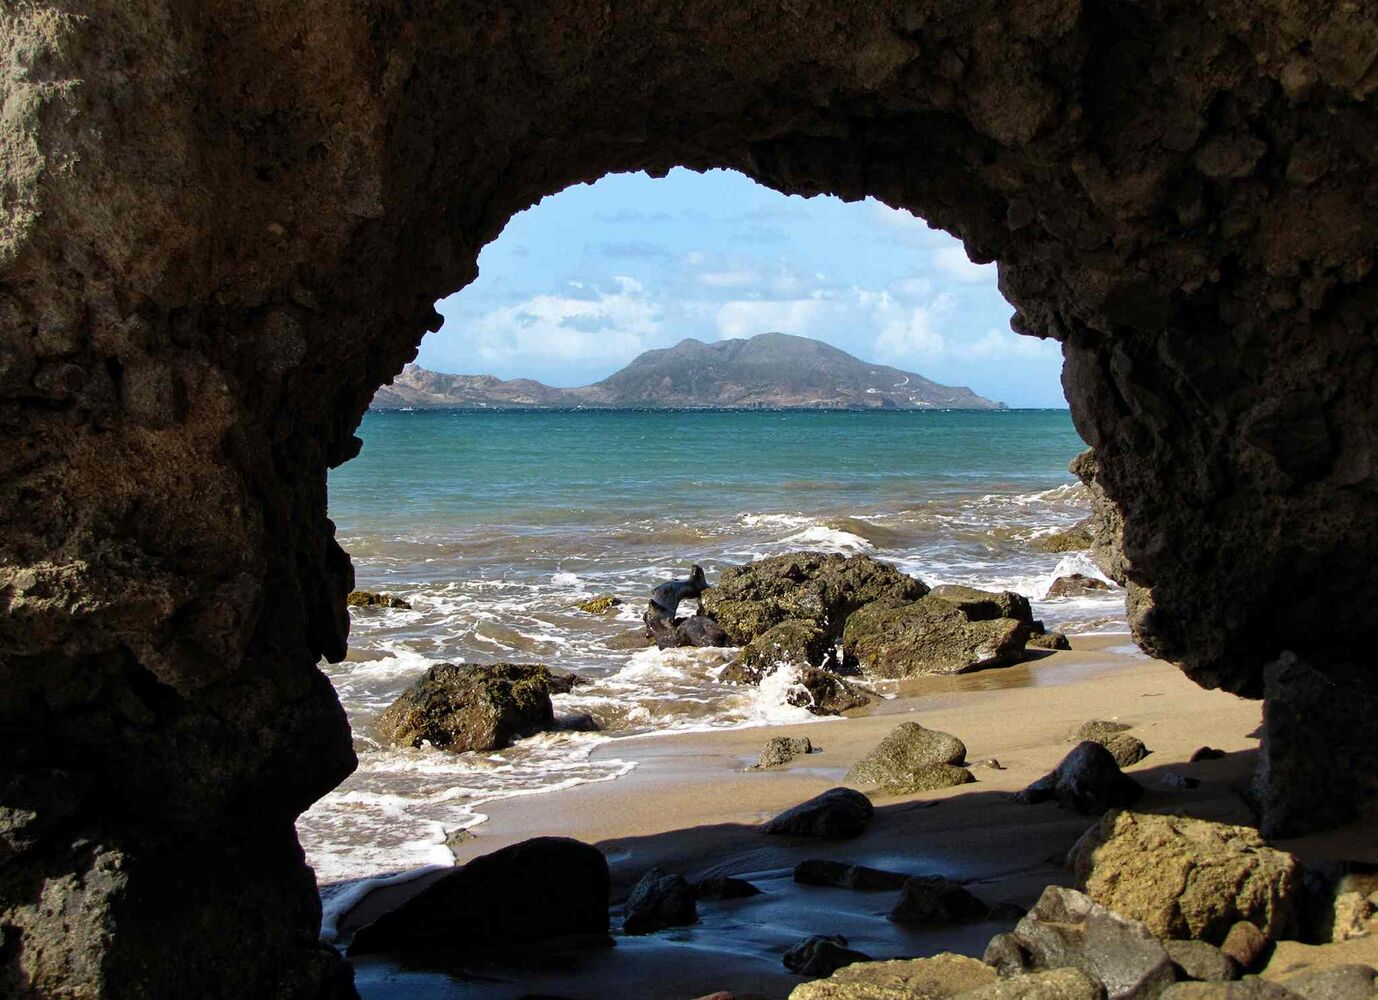 A view of St. Kitts from a quiet beach on the leeward side of Nevis; Nevis is the smaller of the sister islands that make up the Federation of St. Kitts and Nevis, former British colonies.  (Bloomberg archives)